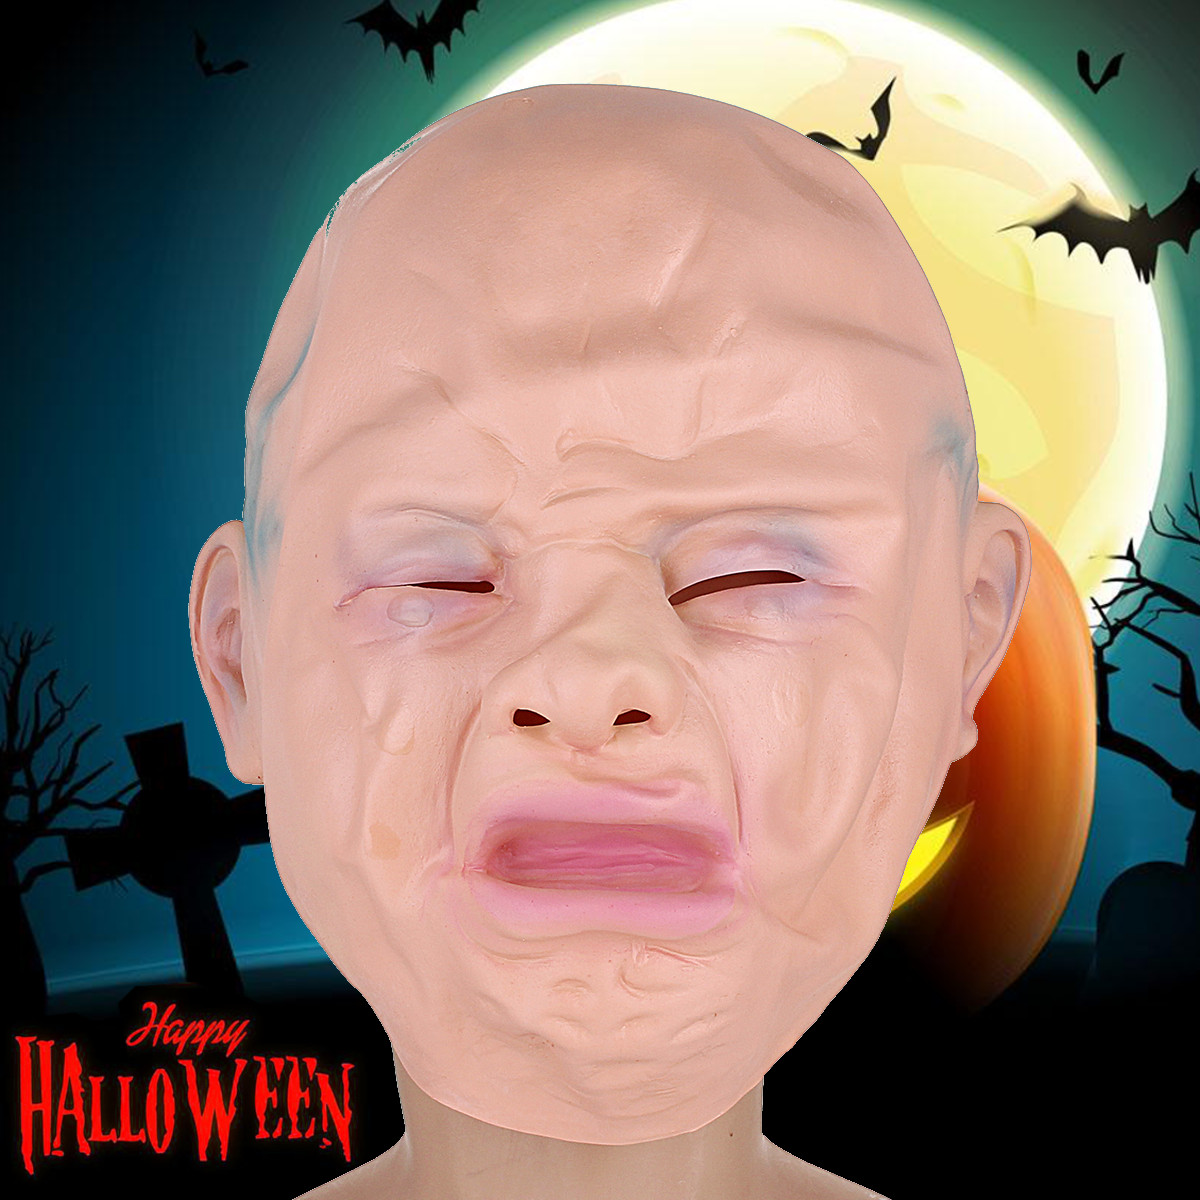 Halloween Full Face Mask Cry Latex Cosplay Horror Trick or Treat Costume Prop